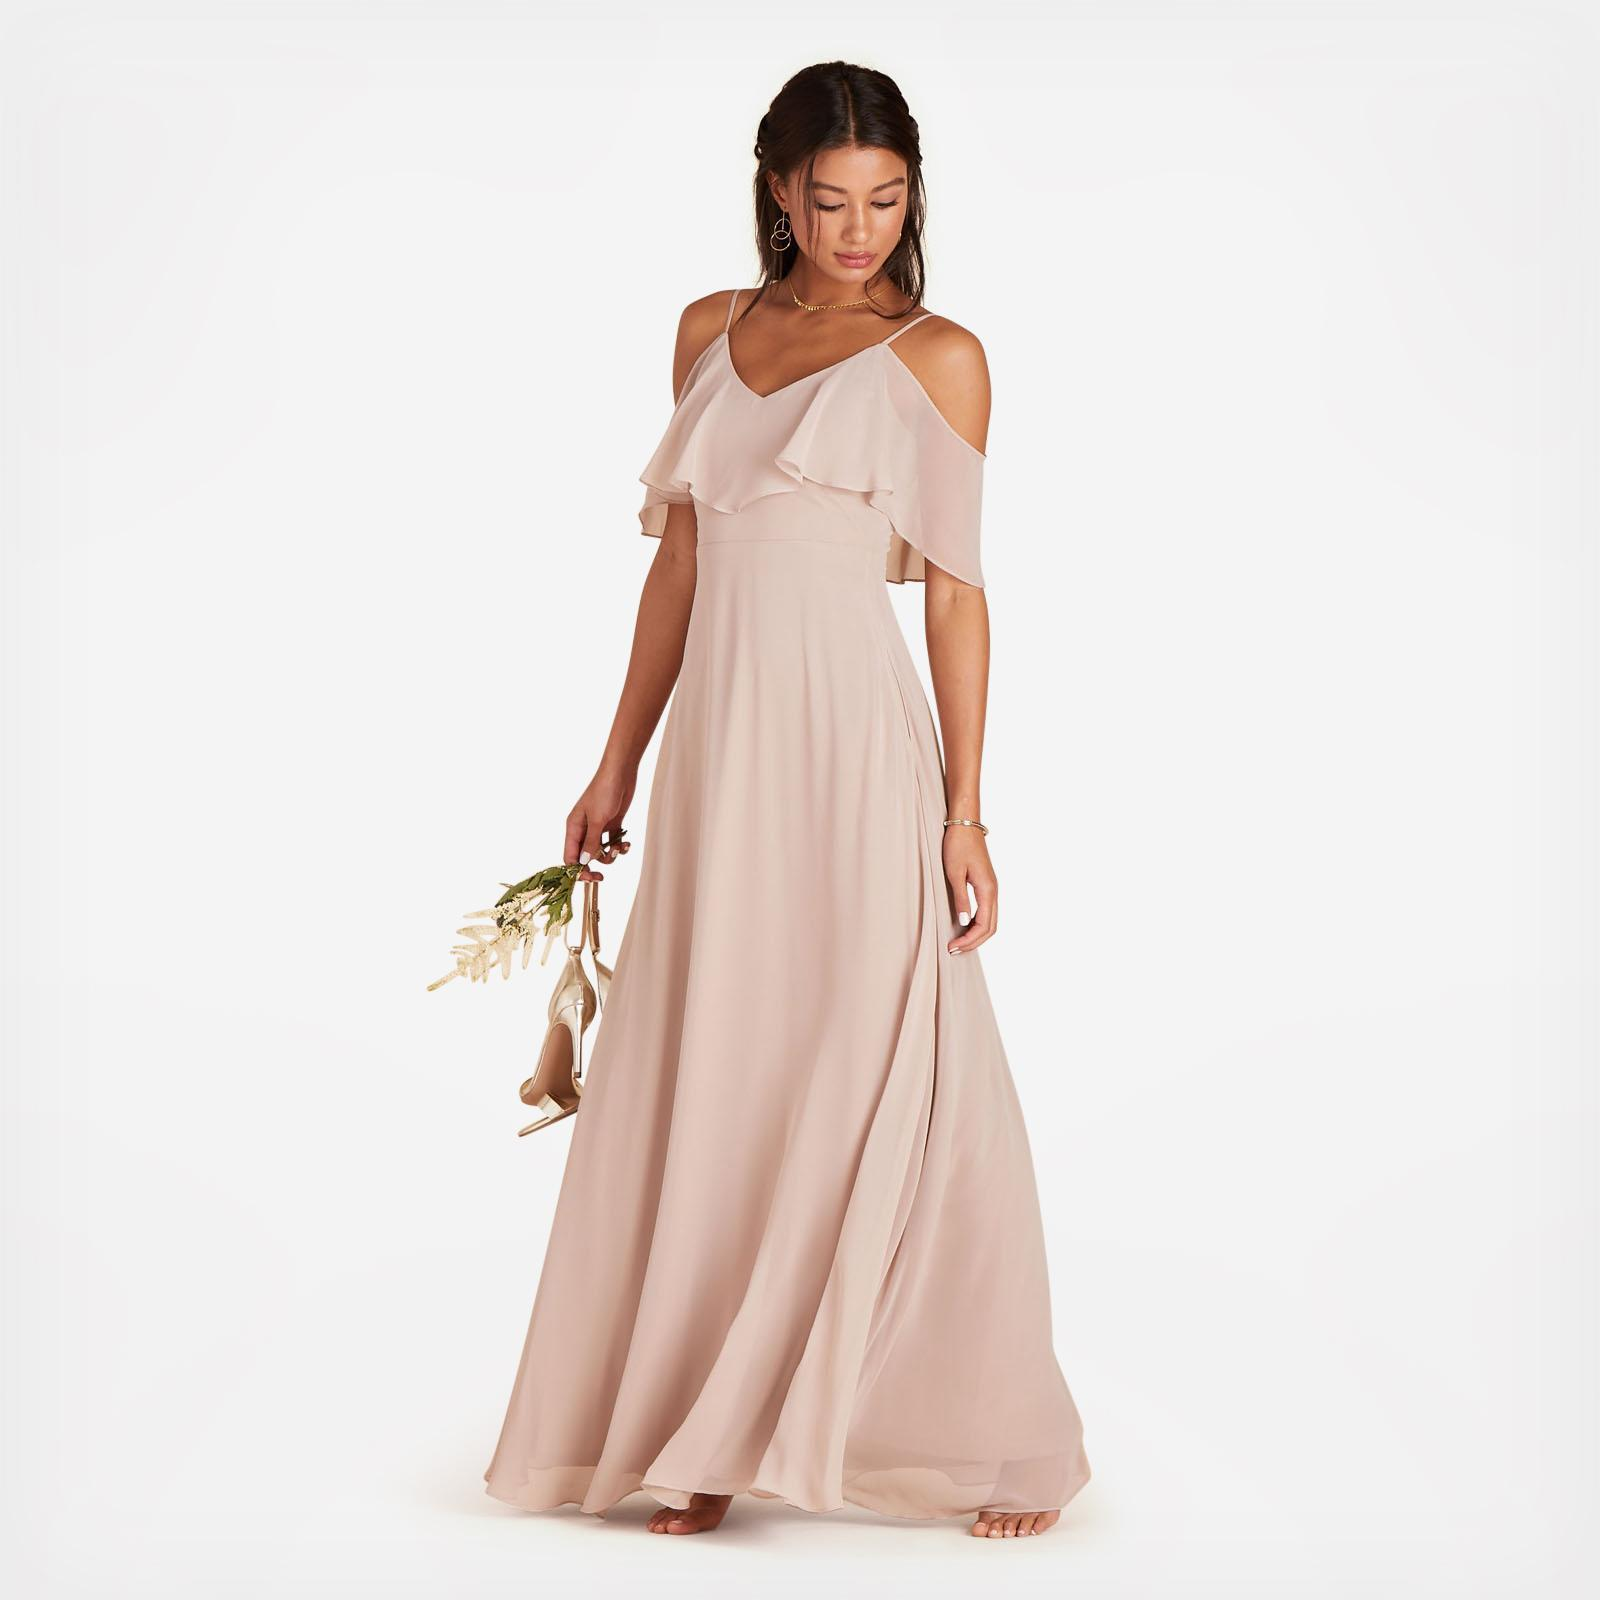 92d7107655c Jane Convertible Bridesmaid Dress - Blush Pink